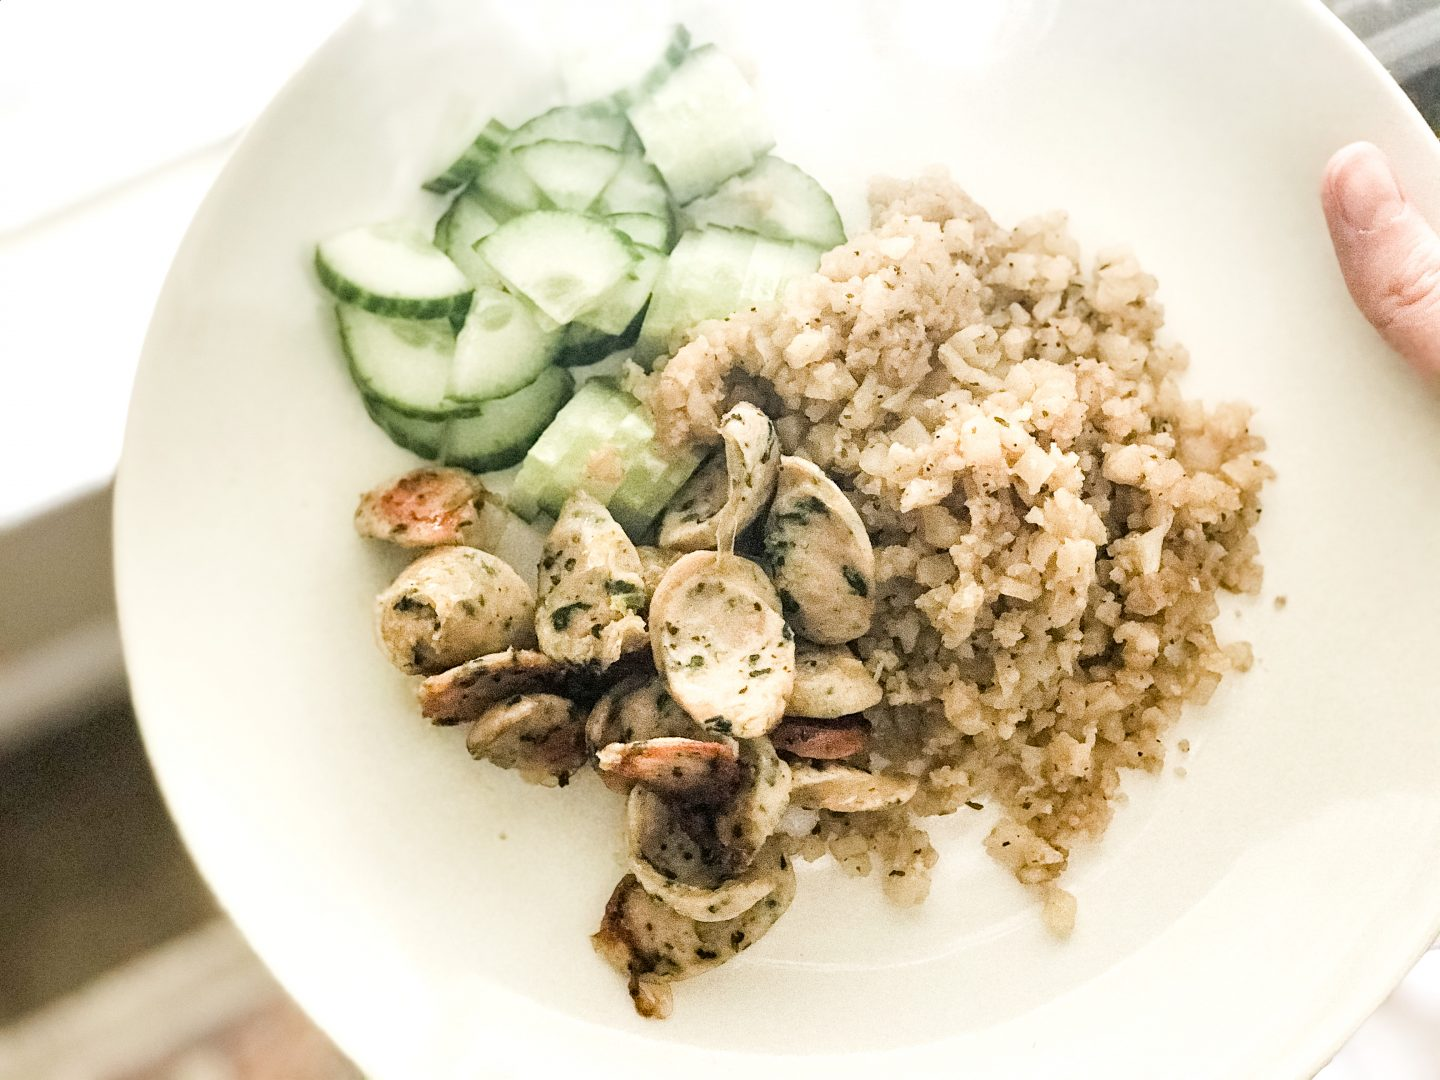 Work From Home Lunch Ideas Using Fridge Staples